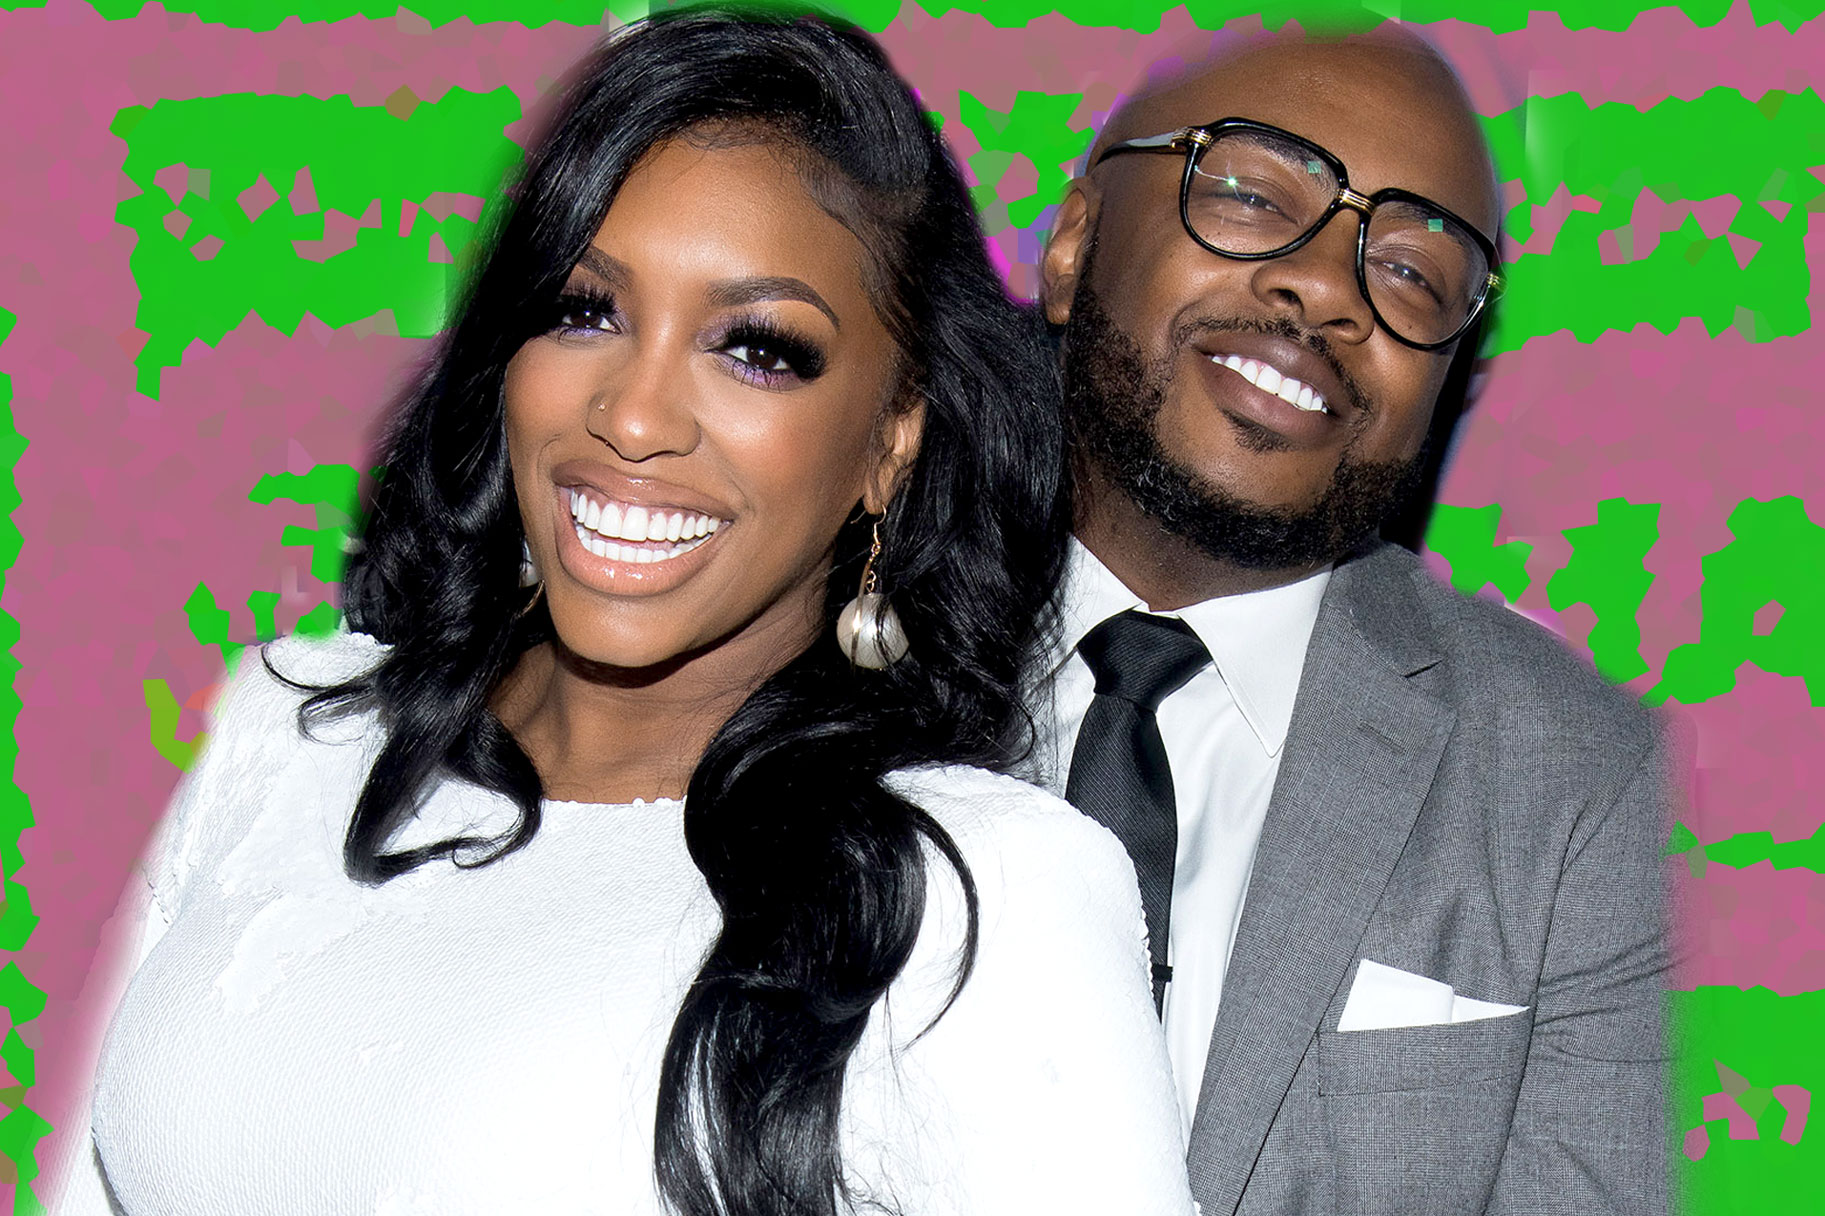 """dennis-mckinley-says-porsha-williams-and-their-baby-are-his-everything-in-response-to-those-breakup-speculations"""